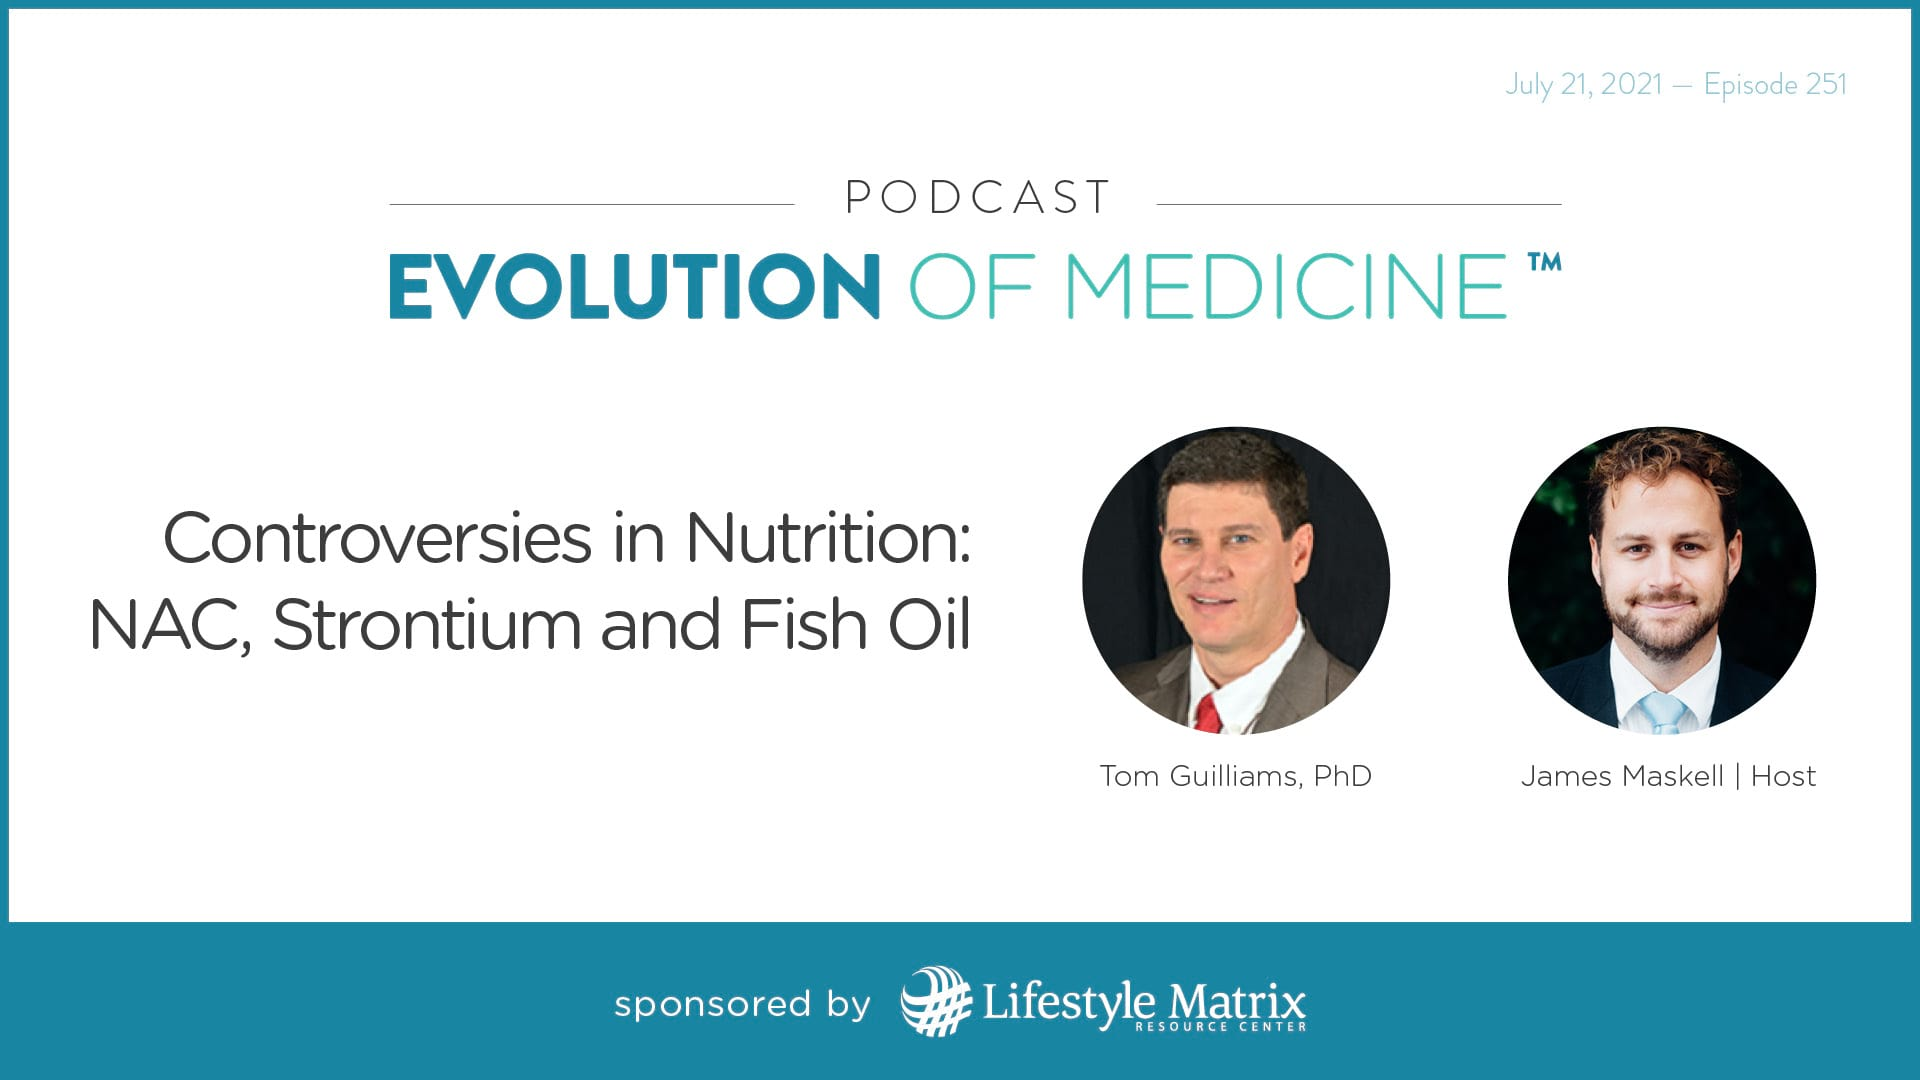 Controversies in Nutrition: NAC, Strontium and Fish Oil